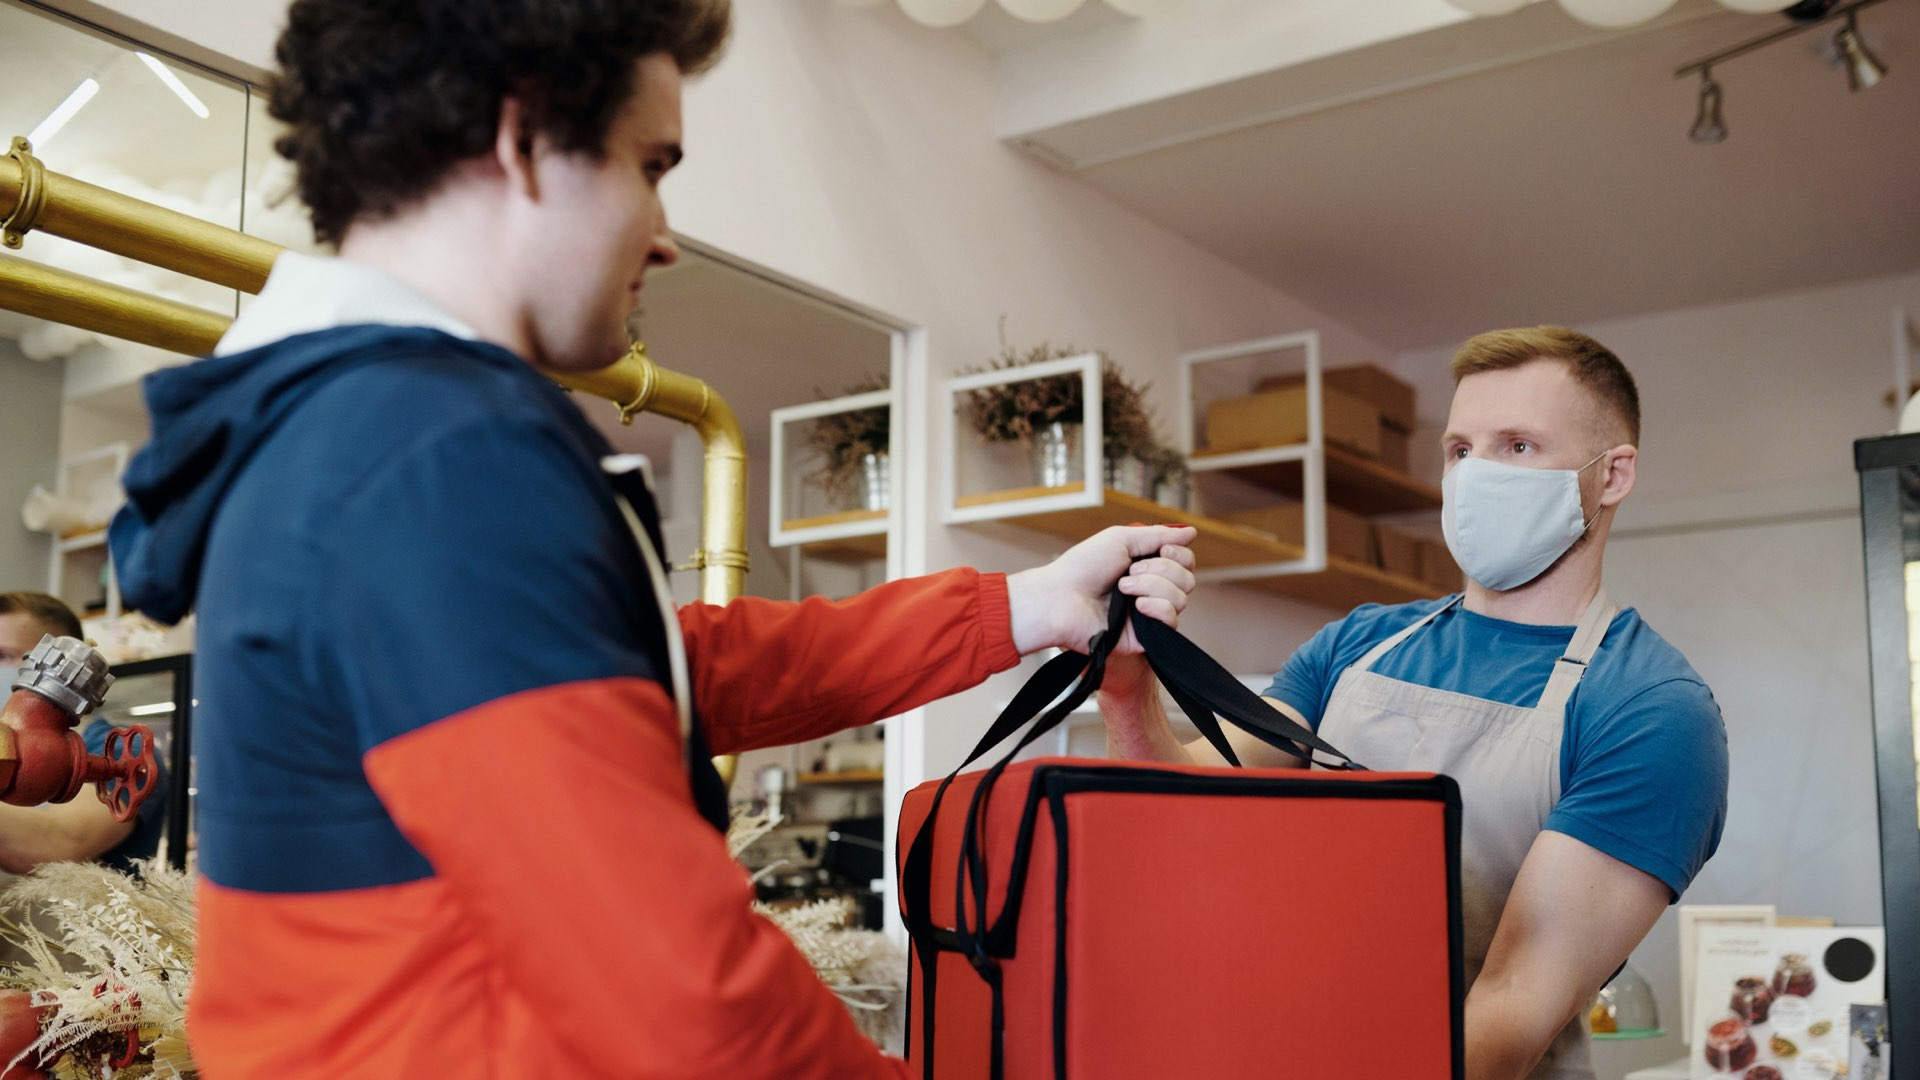 A shop owner handing a food delivery order over to the delivery rider in an insulated bag